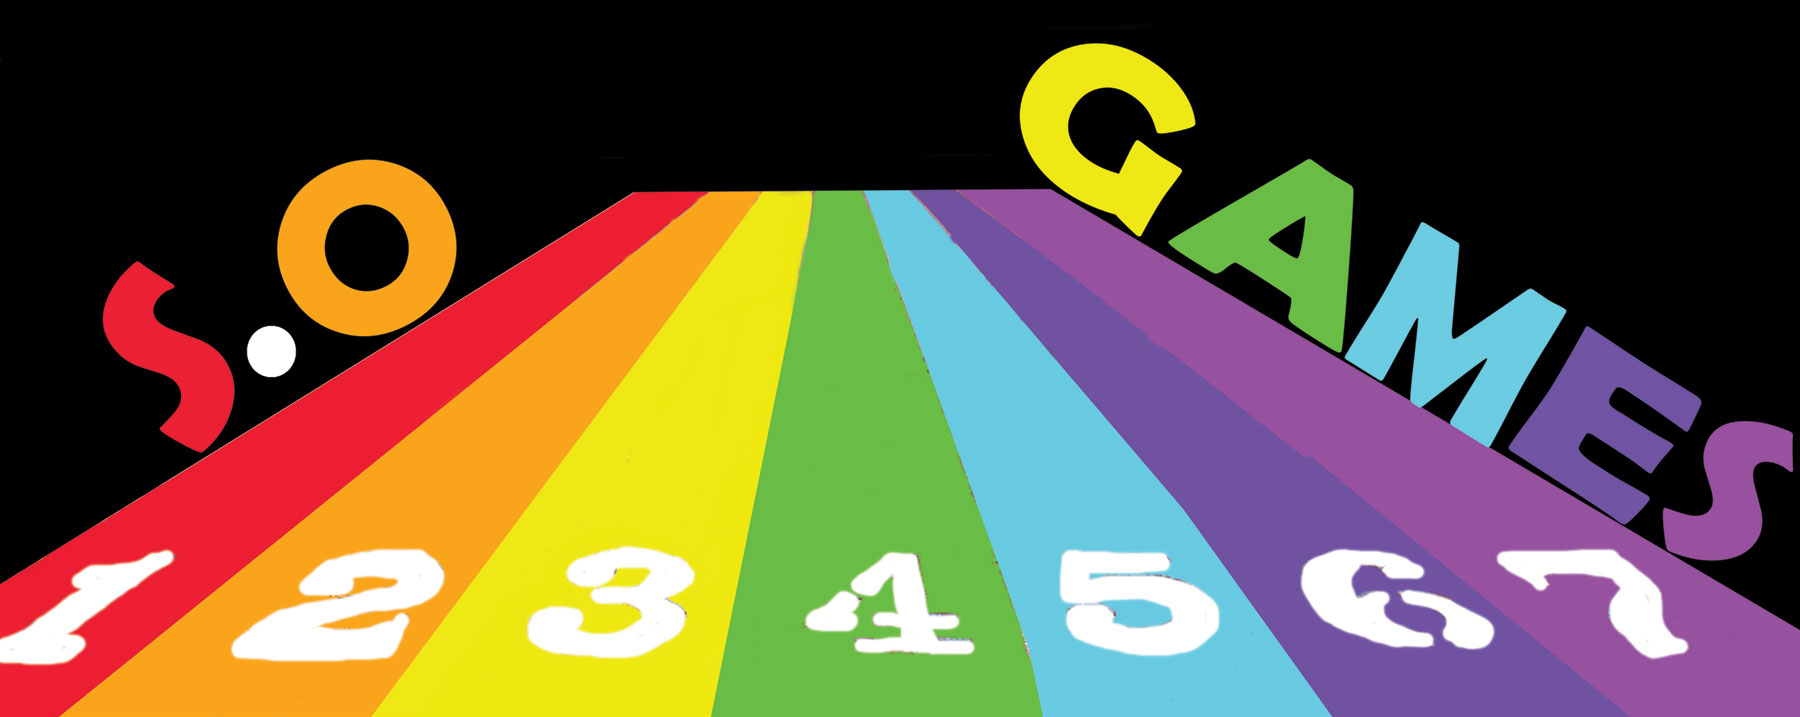 Sport-Out Games for LGBT youth